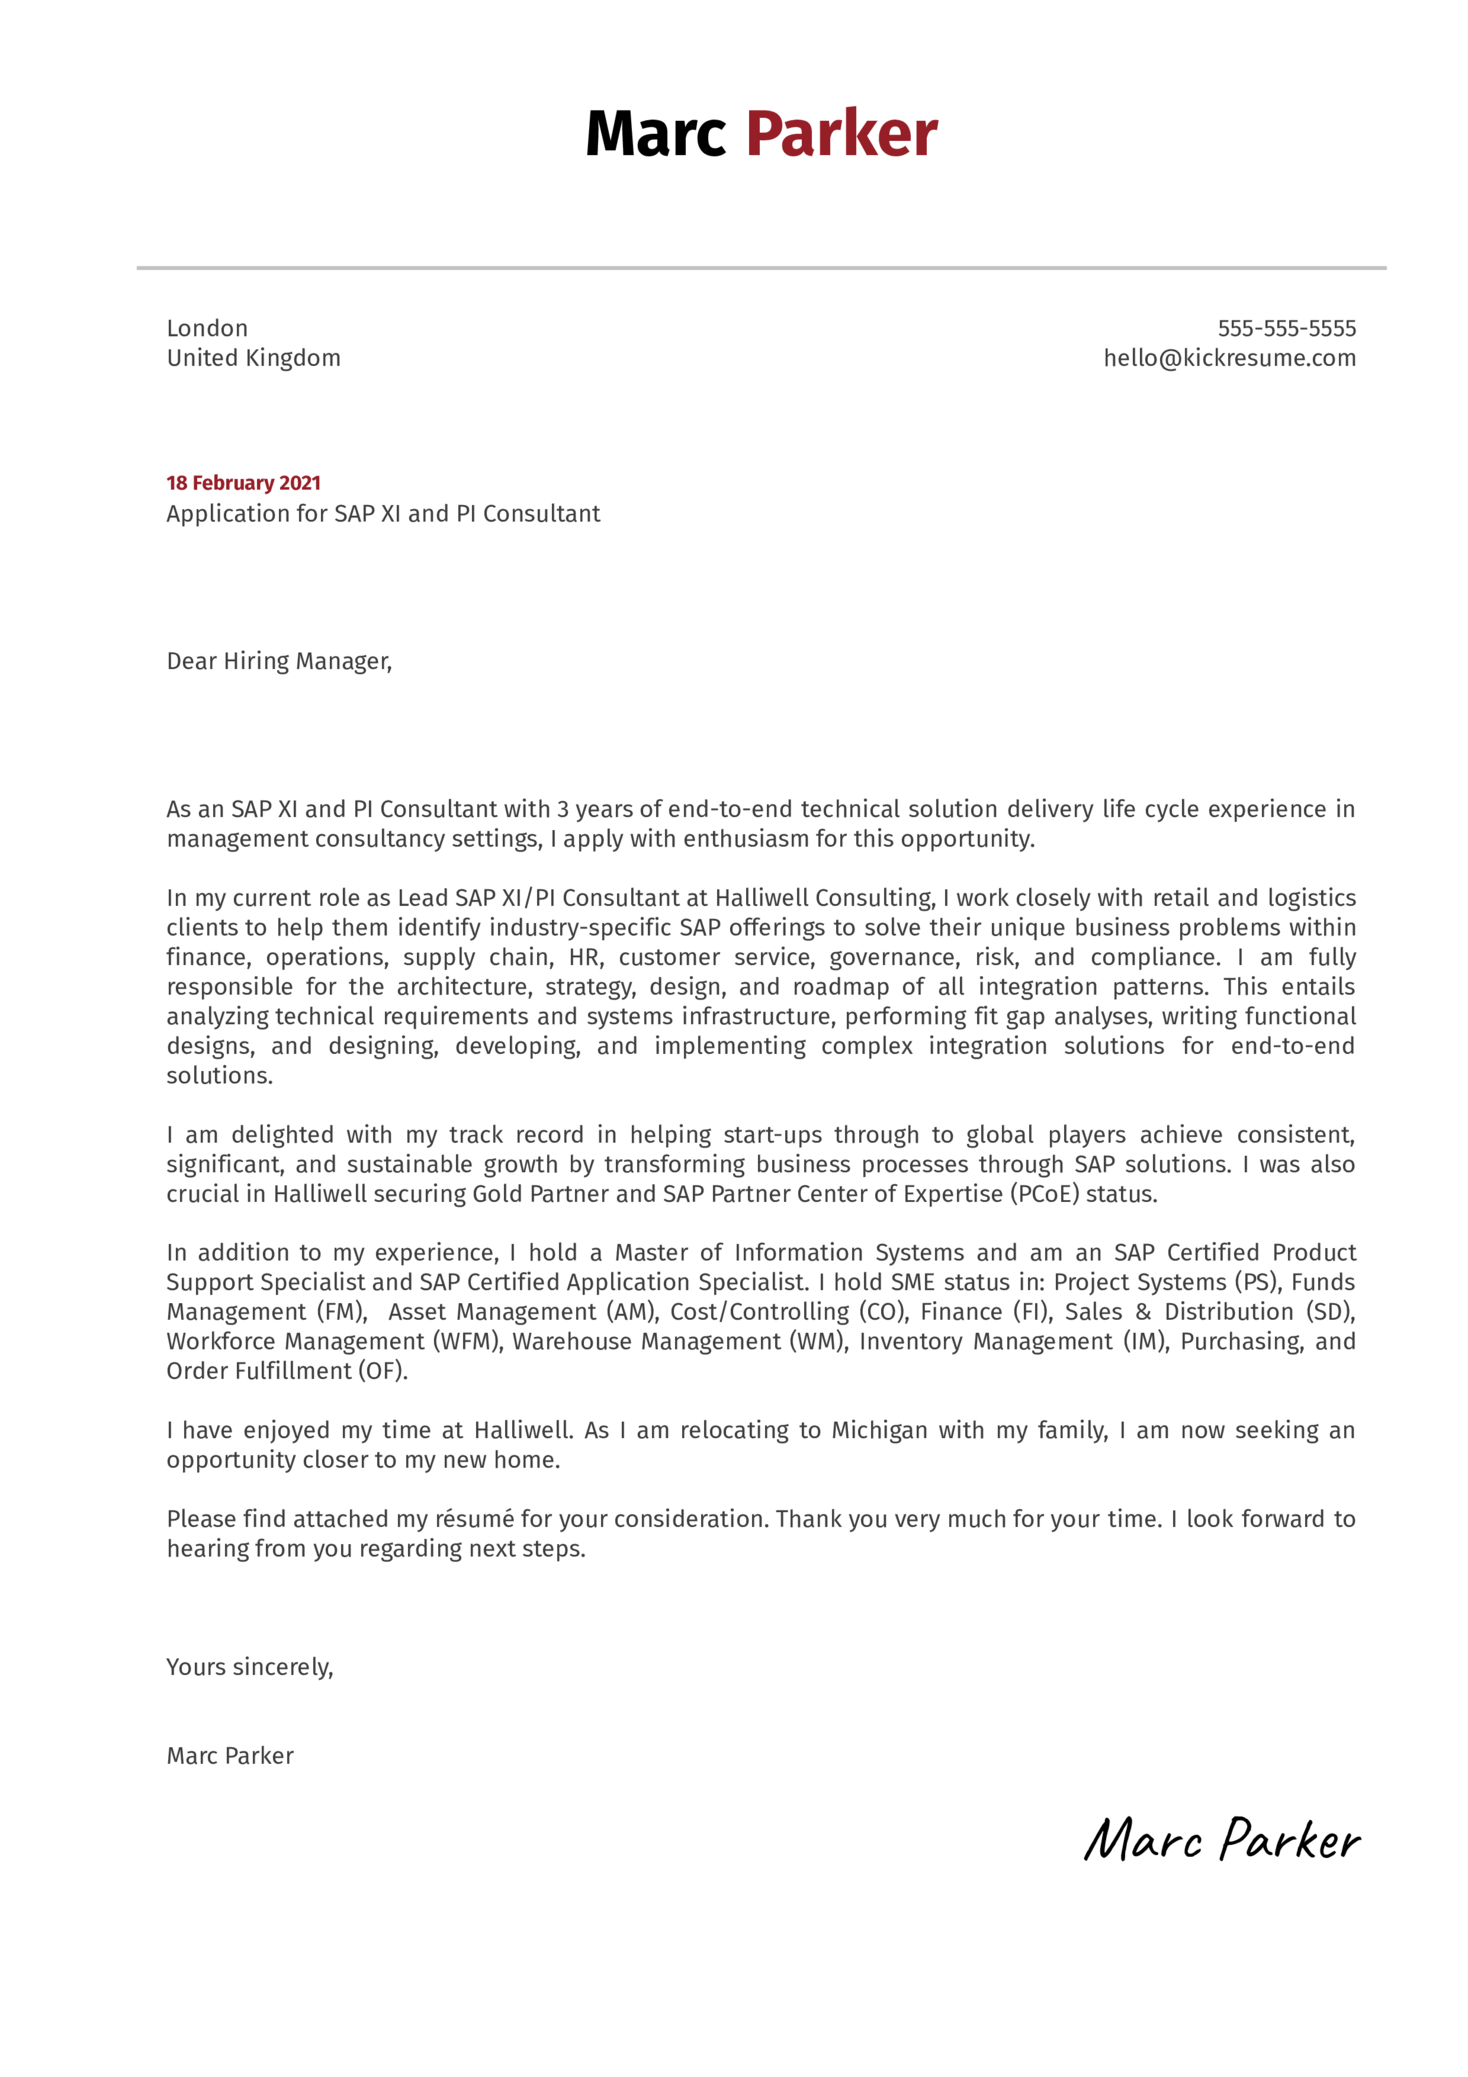 SAP XI and PI Consultant Cover Letter Template